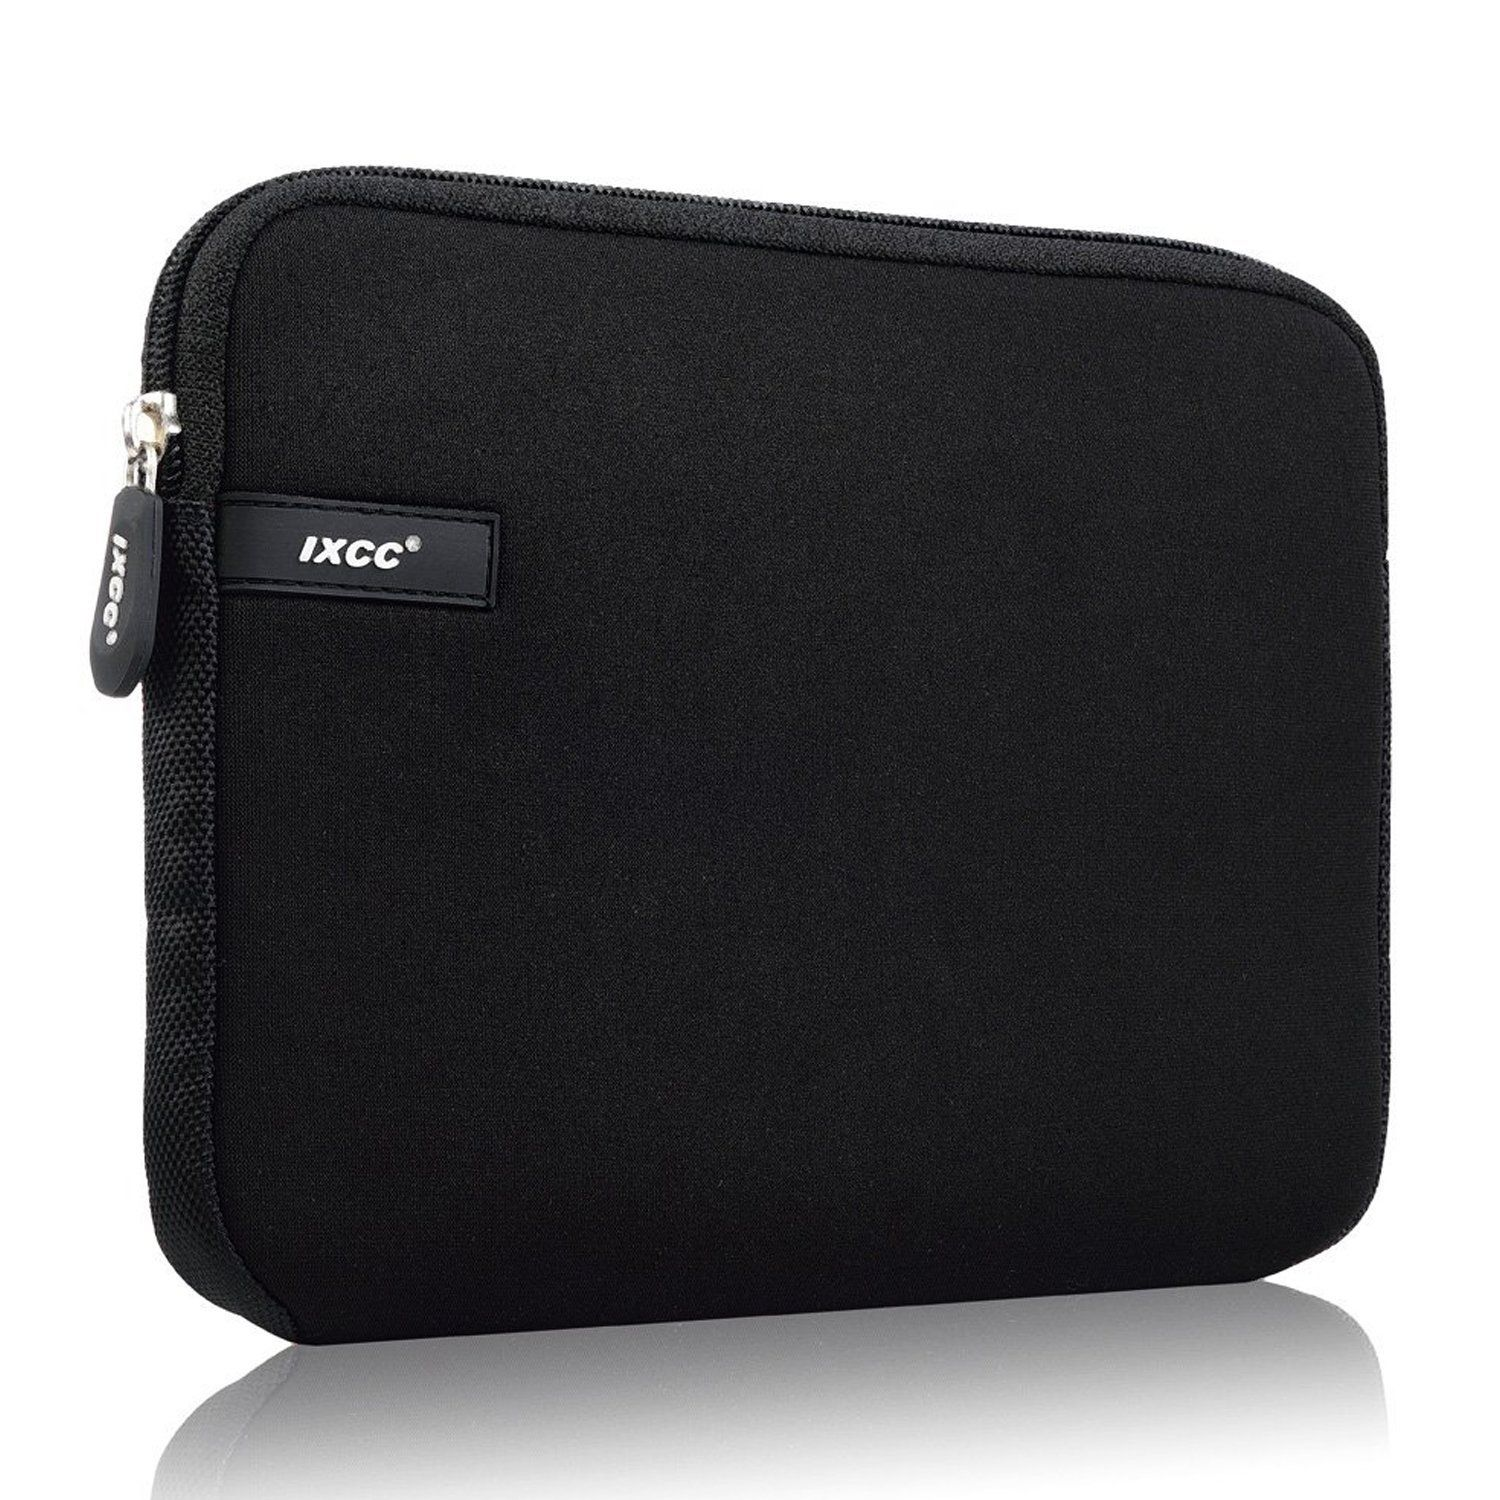 """7.9 Inch Tablet Sleeve - iXCC [Shockproof, Water-resistant, 7.9""""-8""""] Case for iPad mini / Galaxy Tab or Device with a 7.9"""" Screen or Smaller - Black:$6.99"""